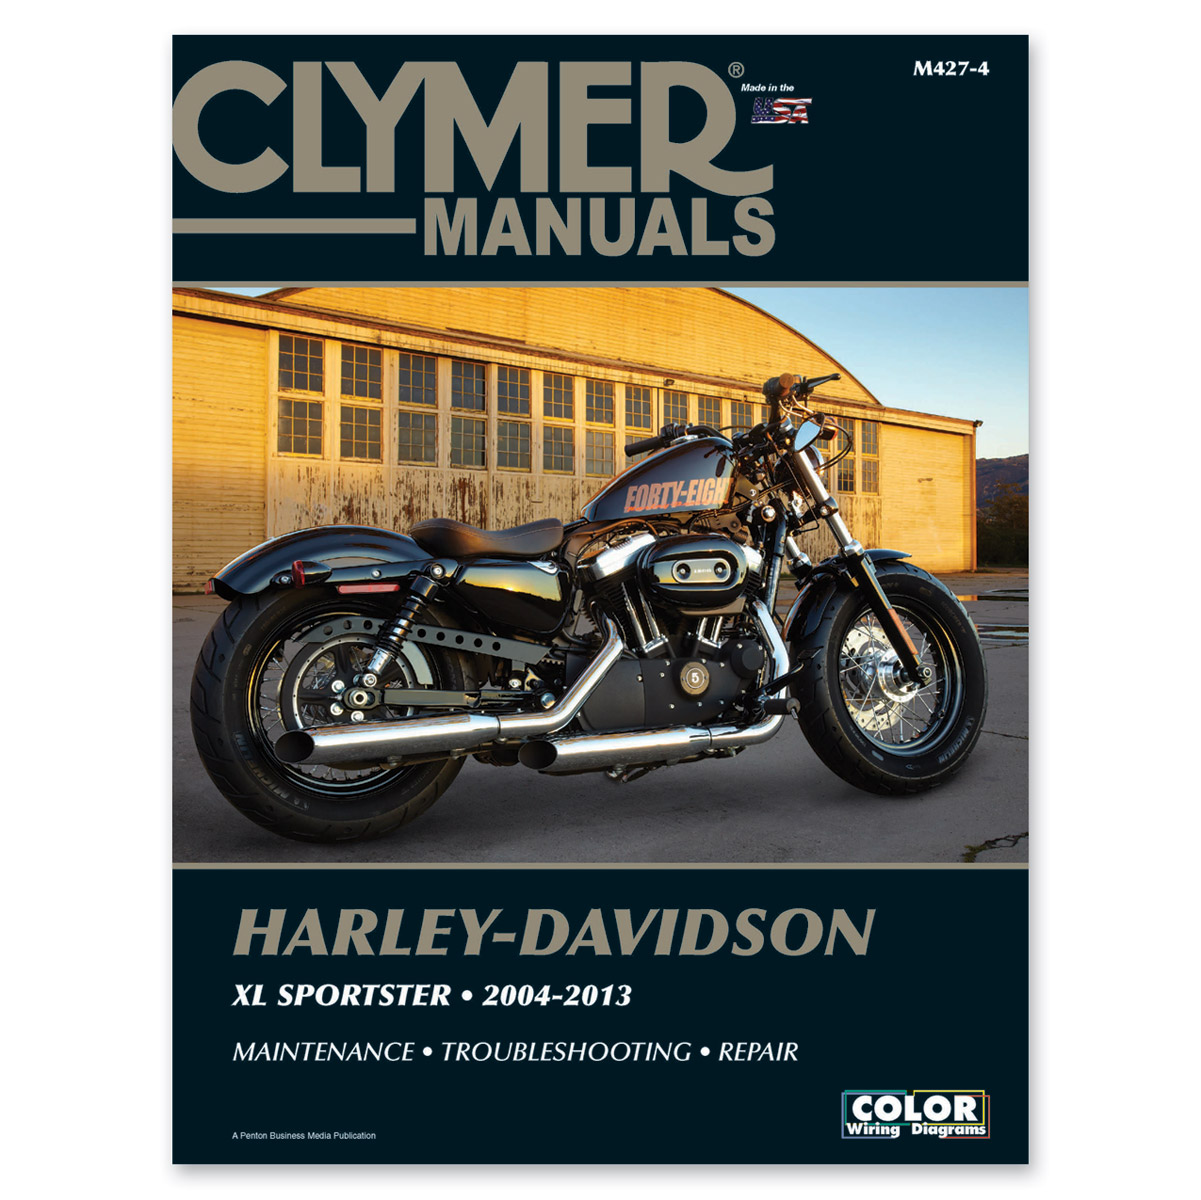 harley davidson repair manuals j p cycles rh jpcycles com Harley Ironhead harley davidson shovelhead workshop manual